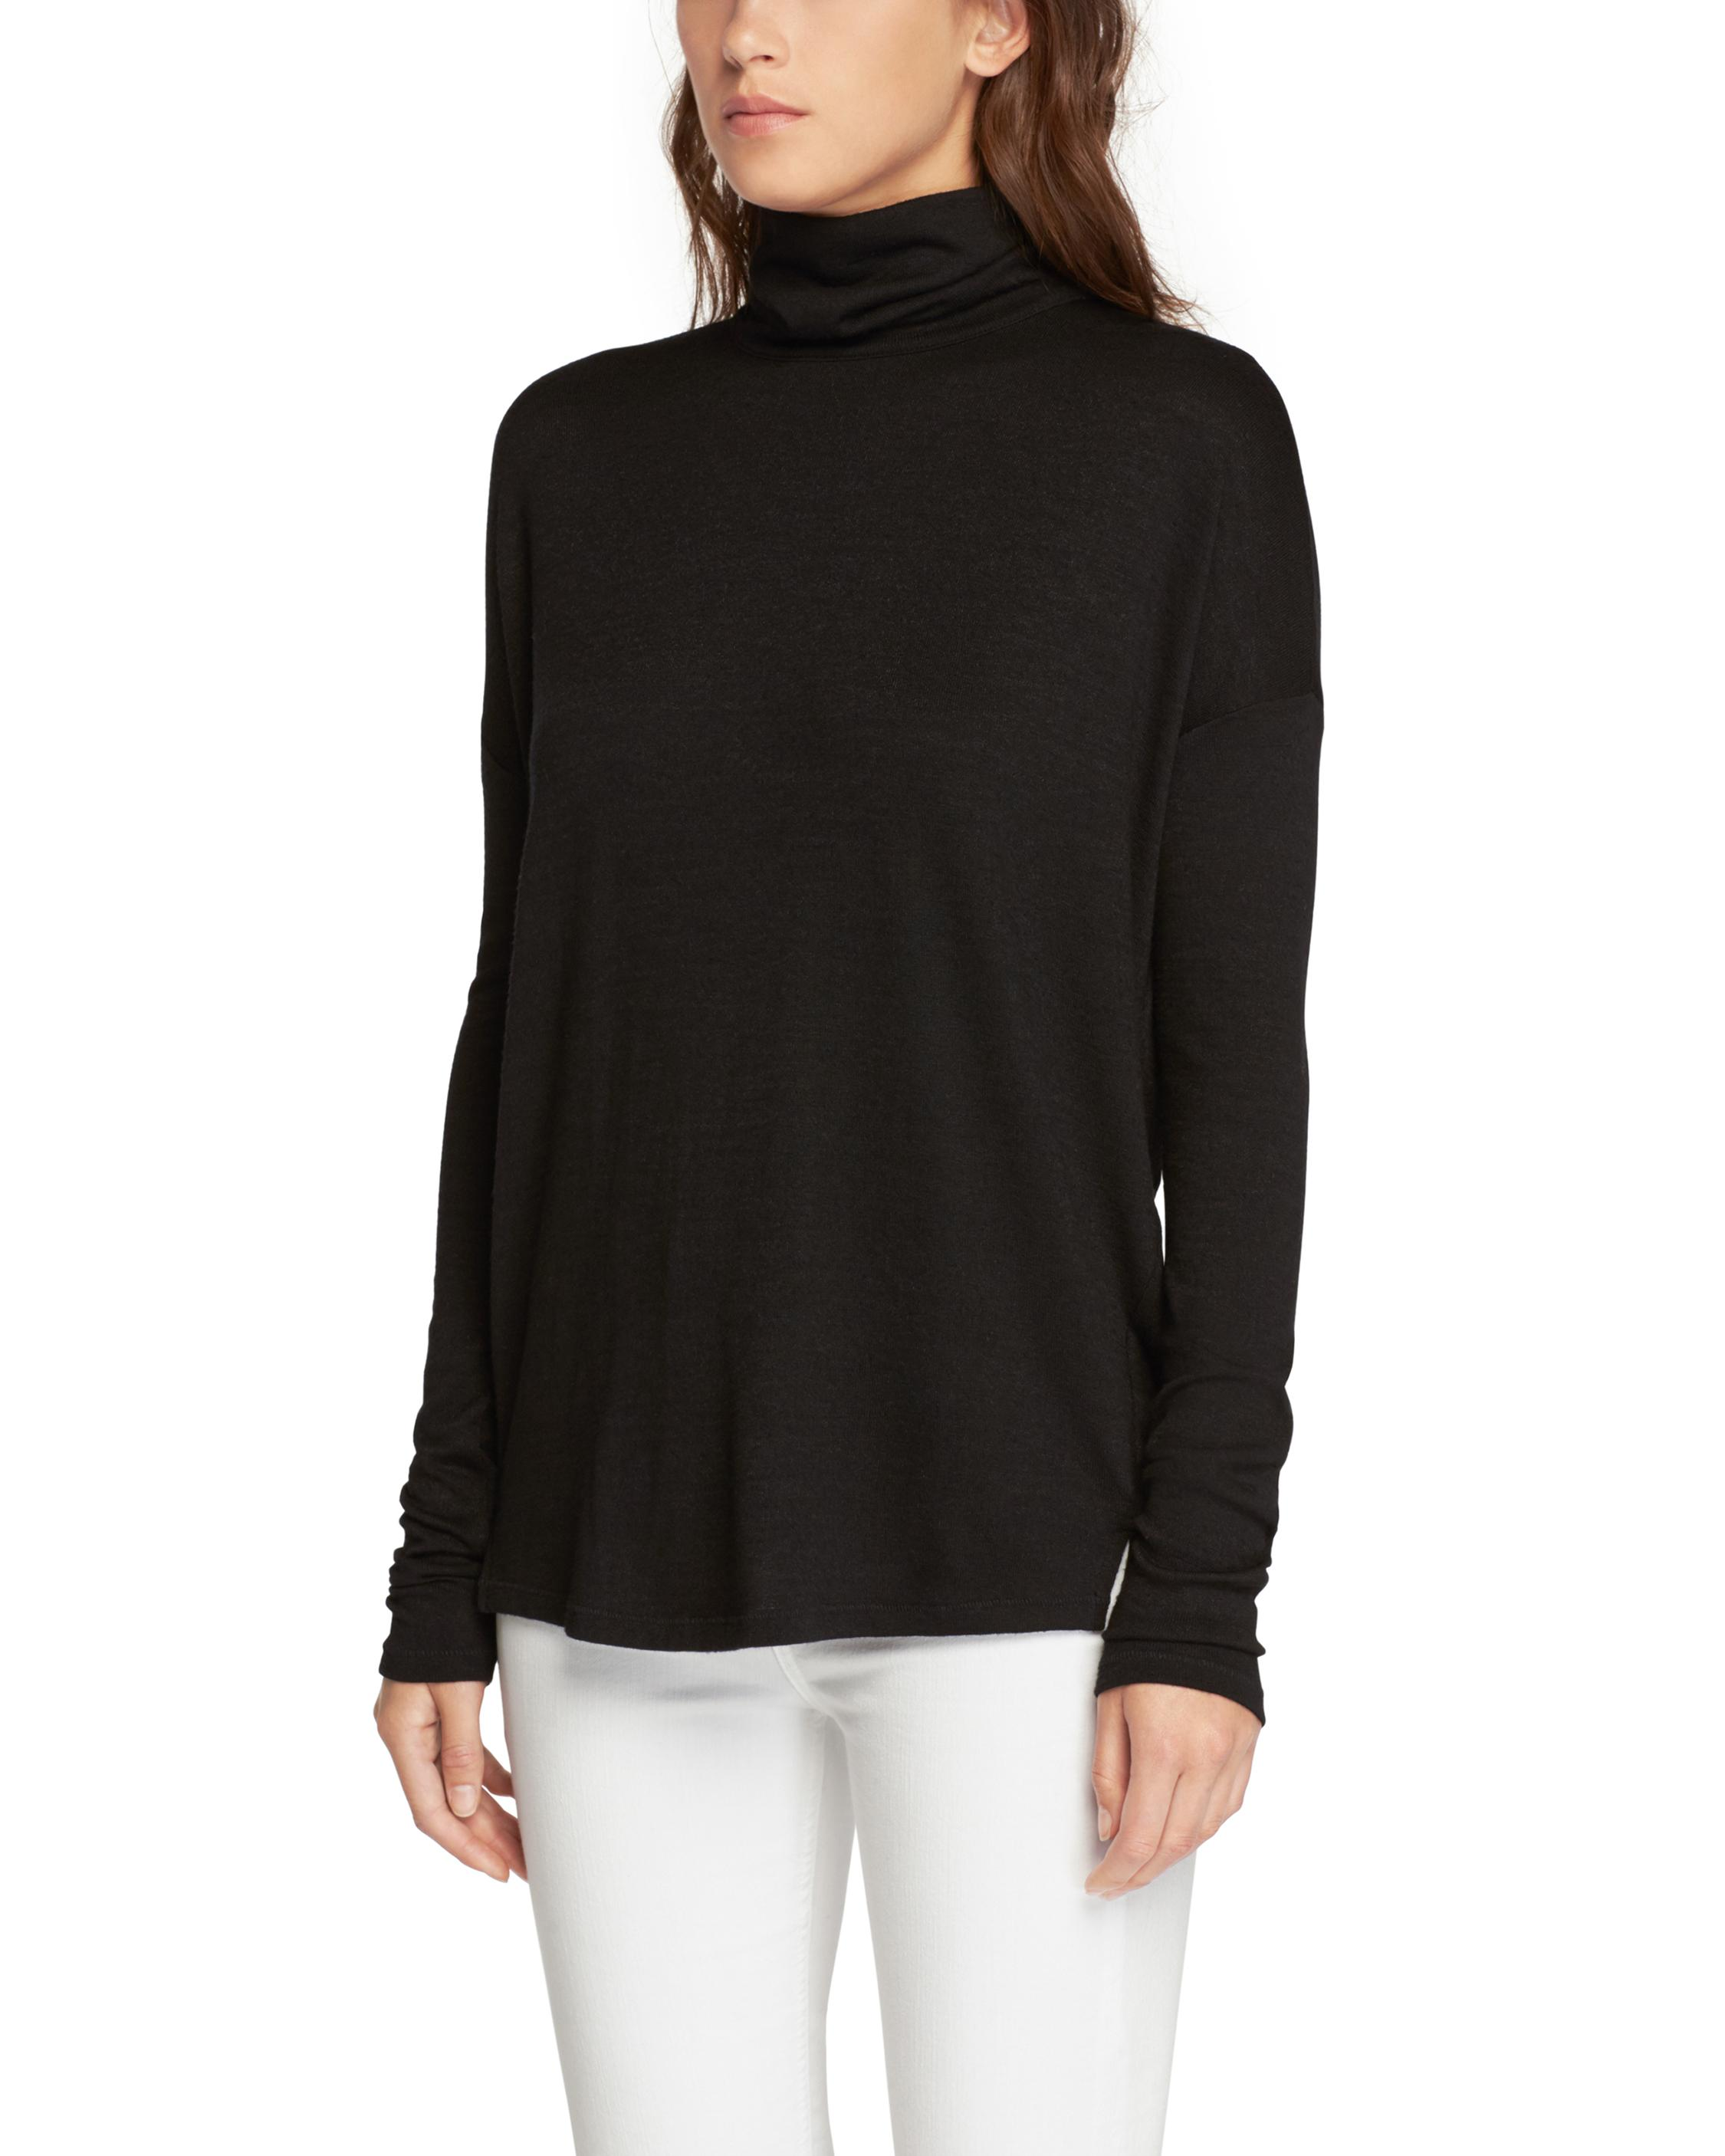 CUTOUT LONG SLEEVE TURTLENECK